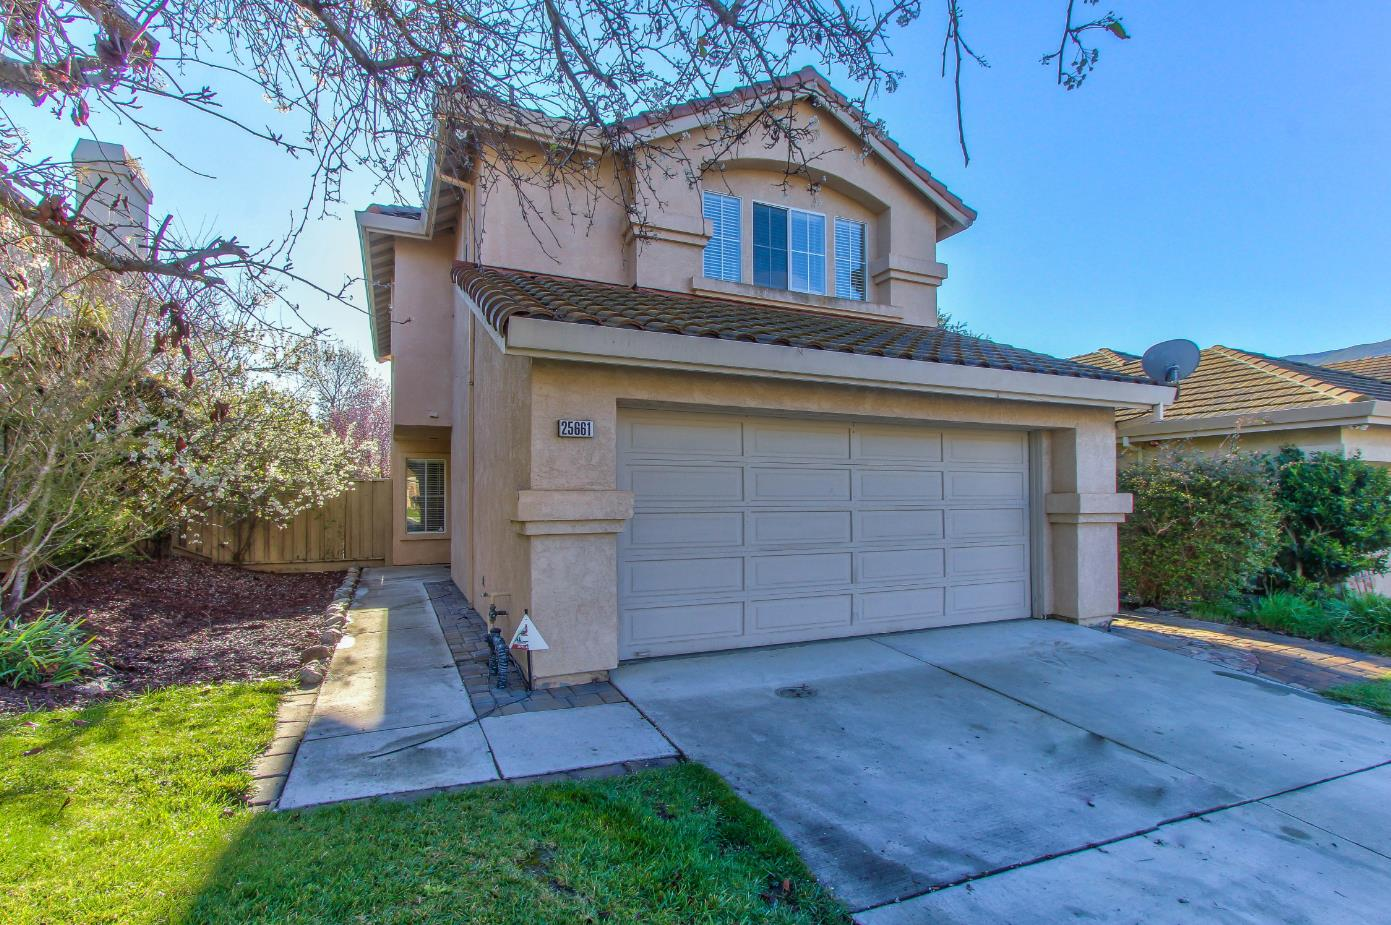 Detail Gallery Image 1 of 1 For 25661 Wisteria Ct, Salinas, CA, 93908 - 3 Beds | 2/1 Baths